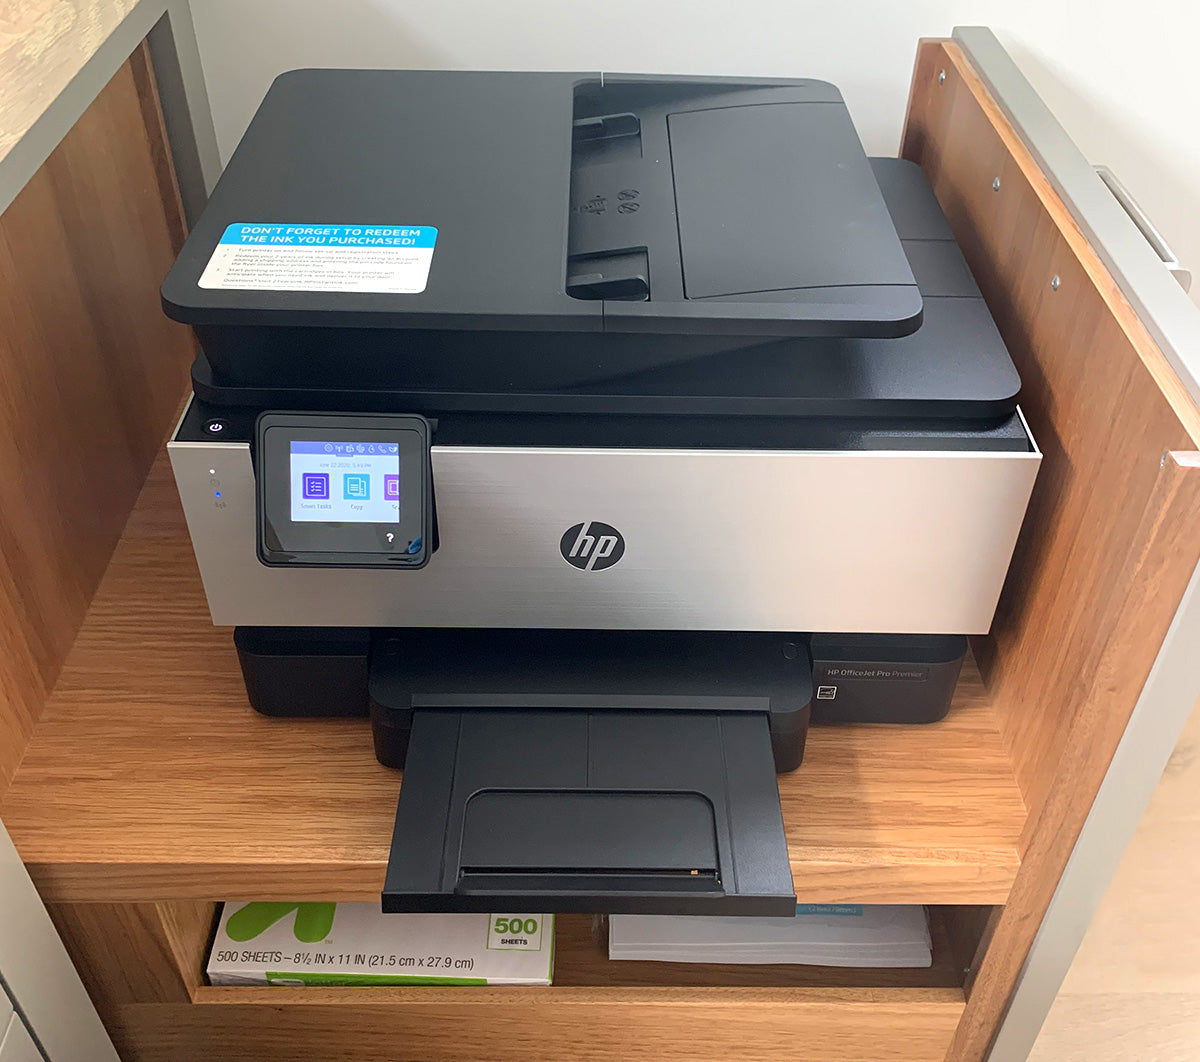 Powered Printer Drawer with outlet